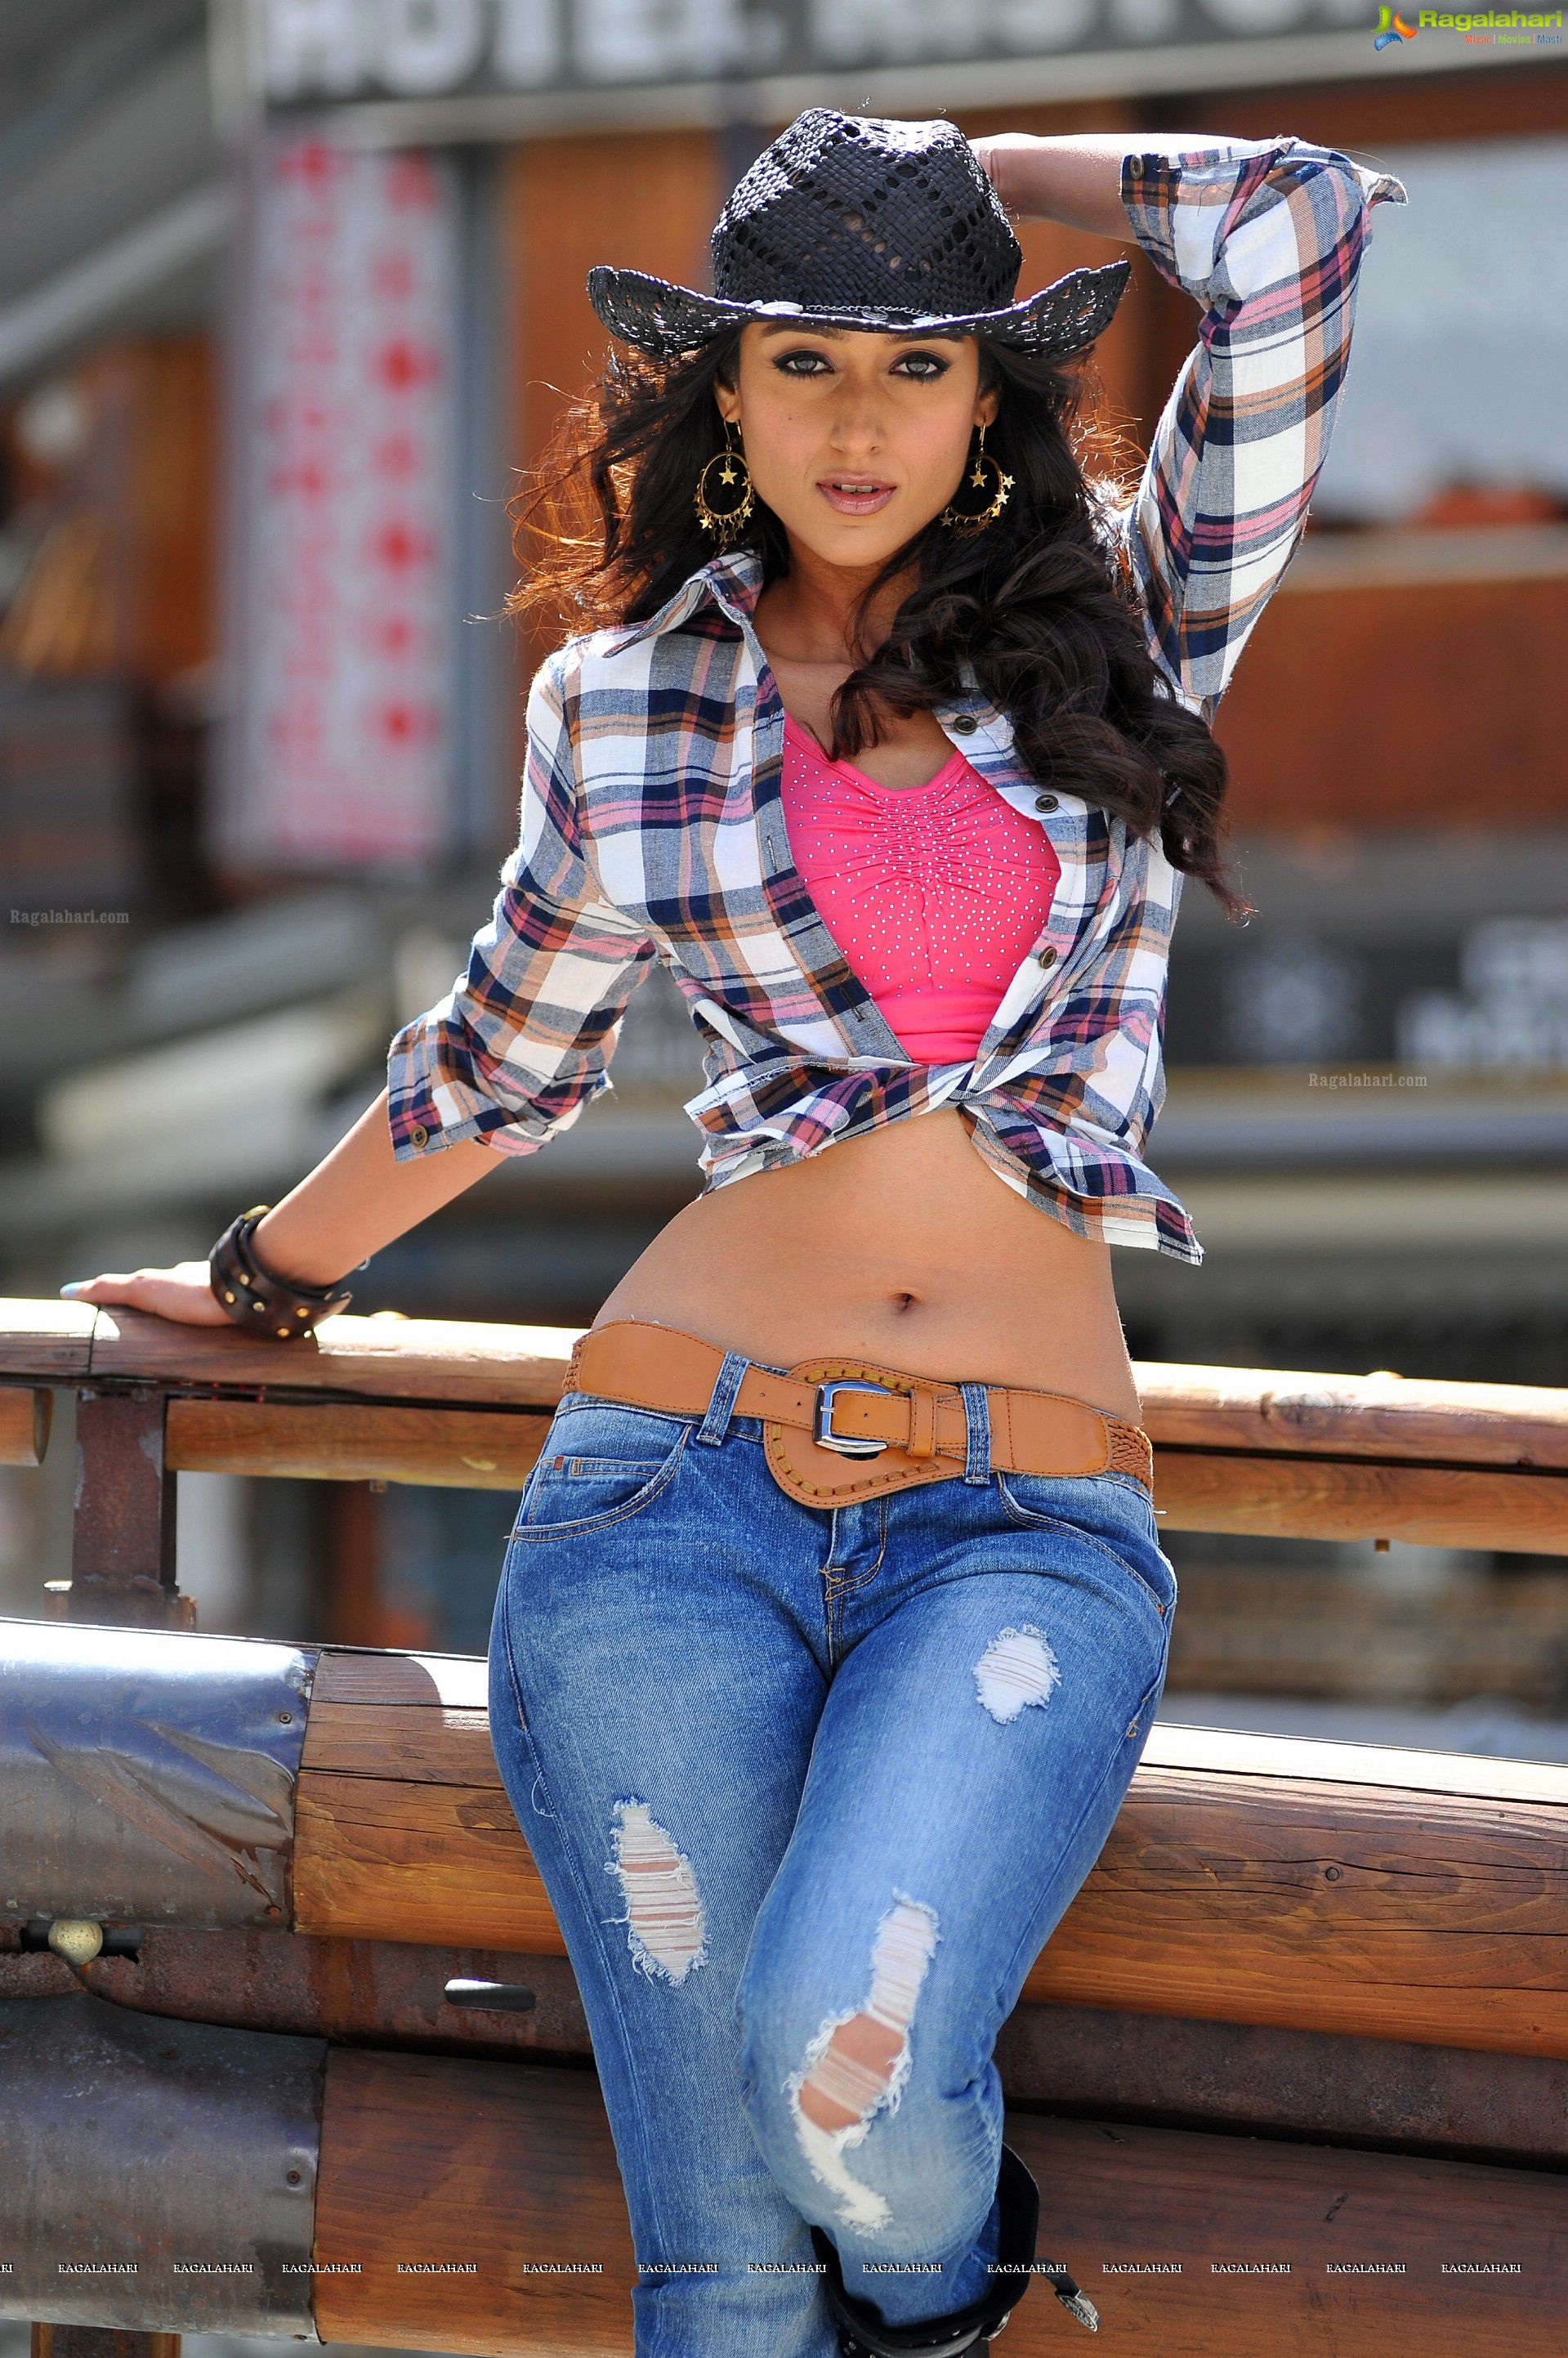 country-girl-hot-rihanna-topless-in-jeans